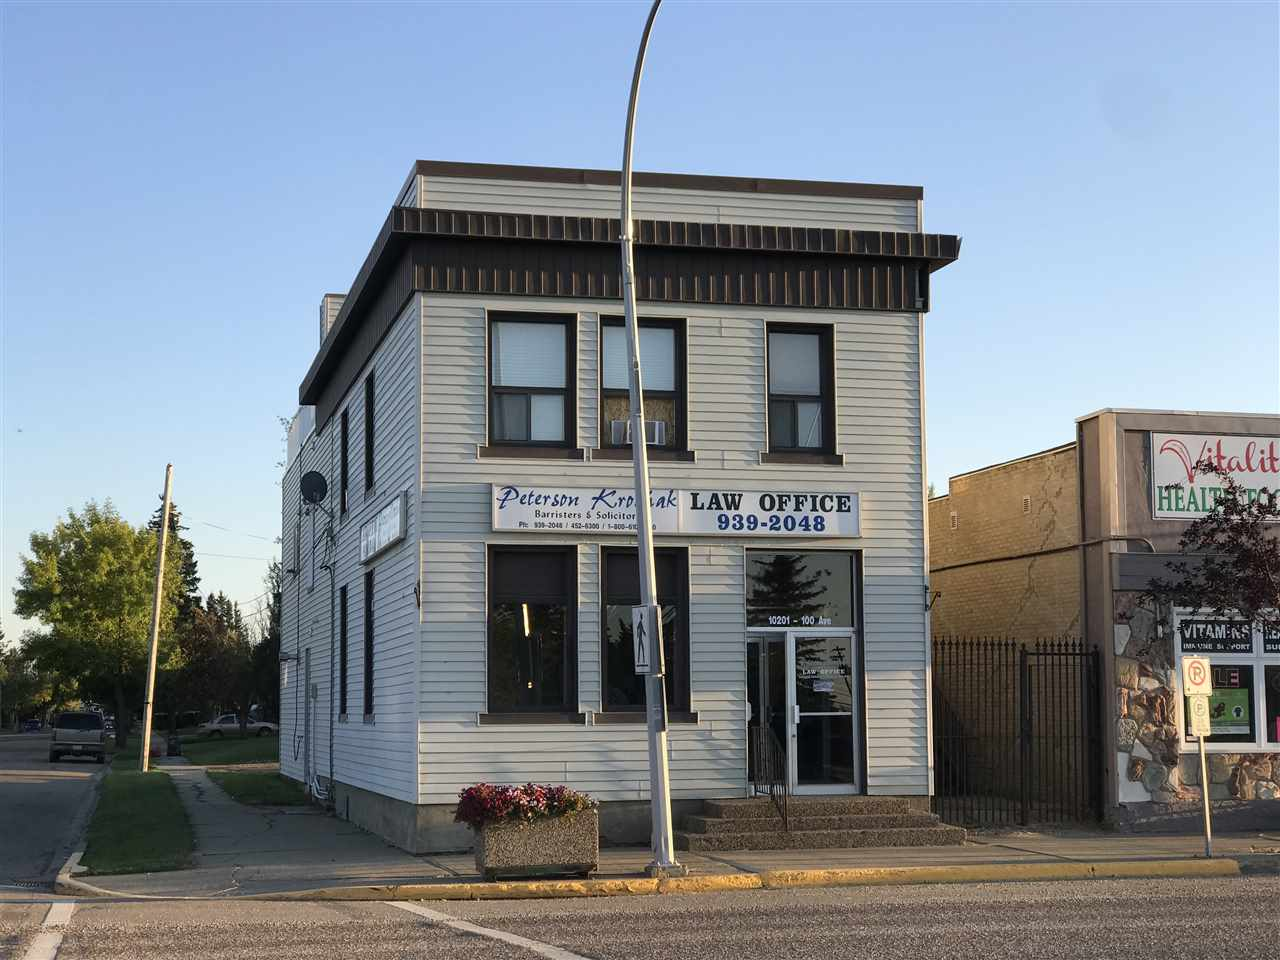 Retail Property for Sale, MLS® # E4127880